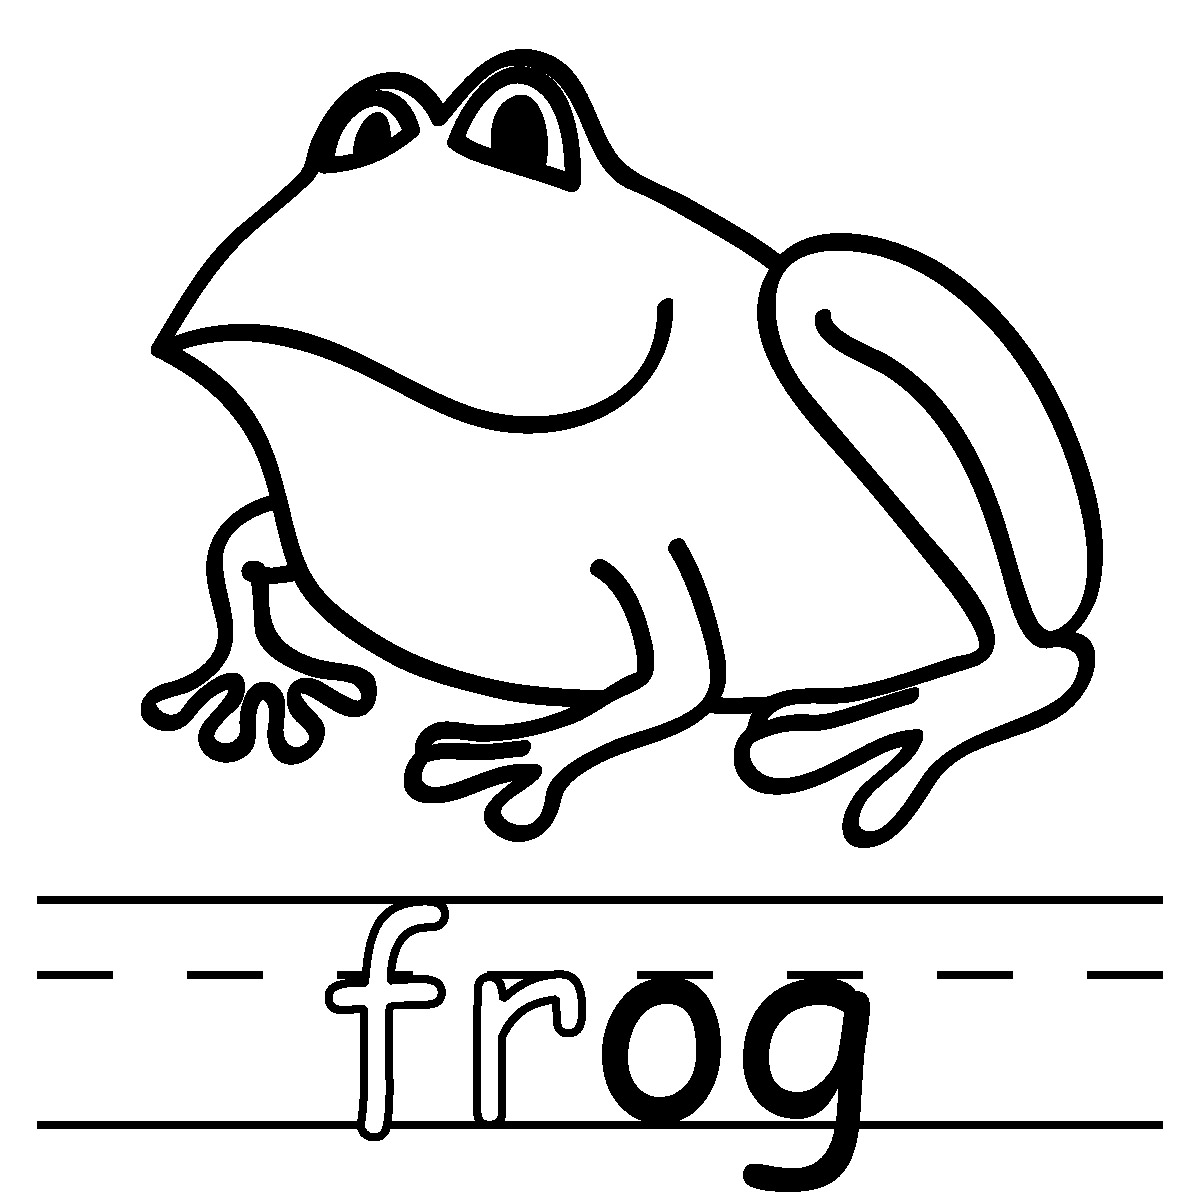 Frog  black and white frog clip art black and white free clipart images 5